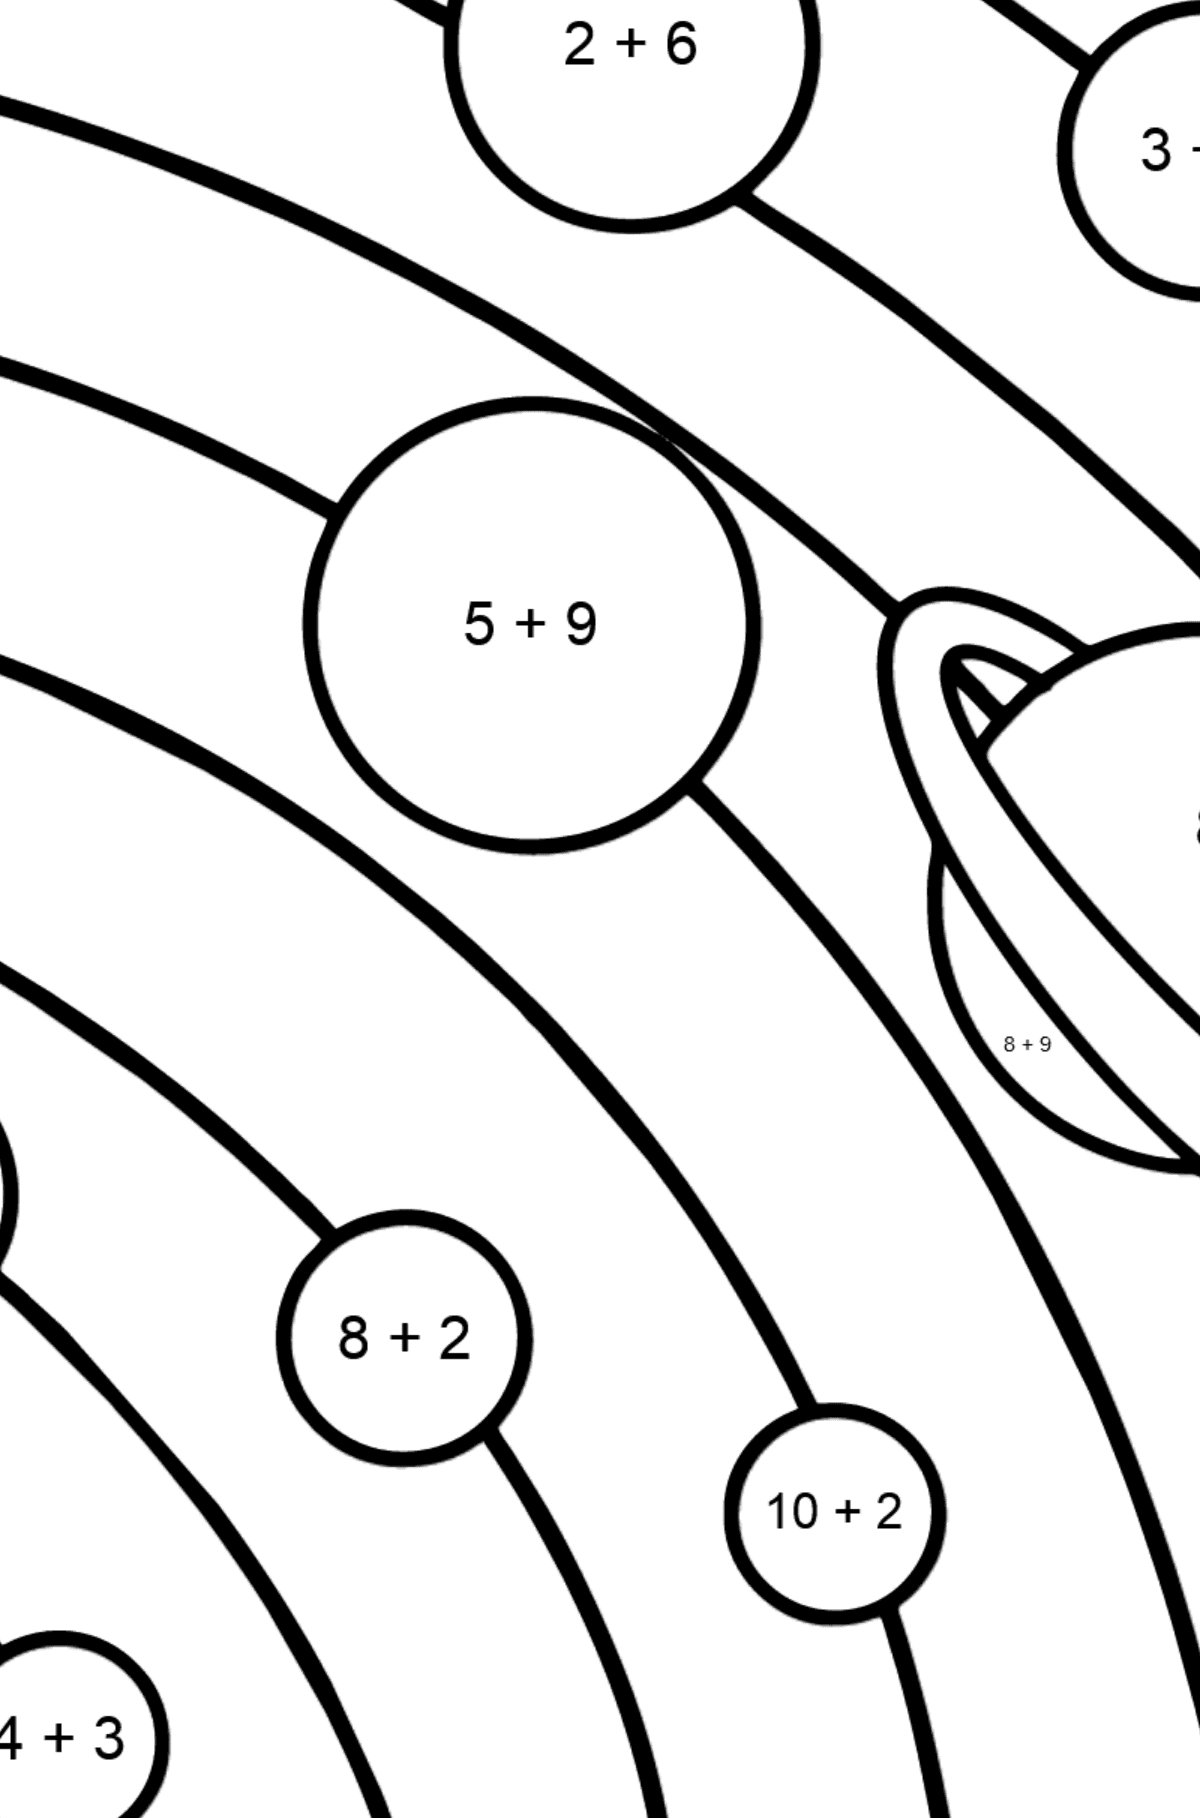 Solar System - Simple coloring page - Math Coloring - Addition for Kids